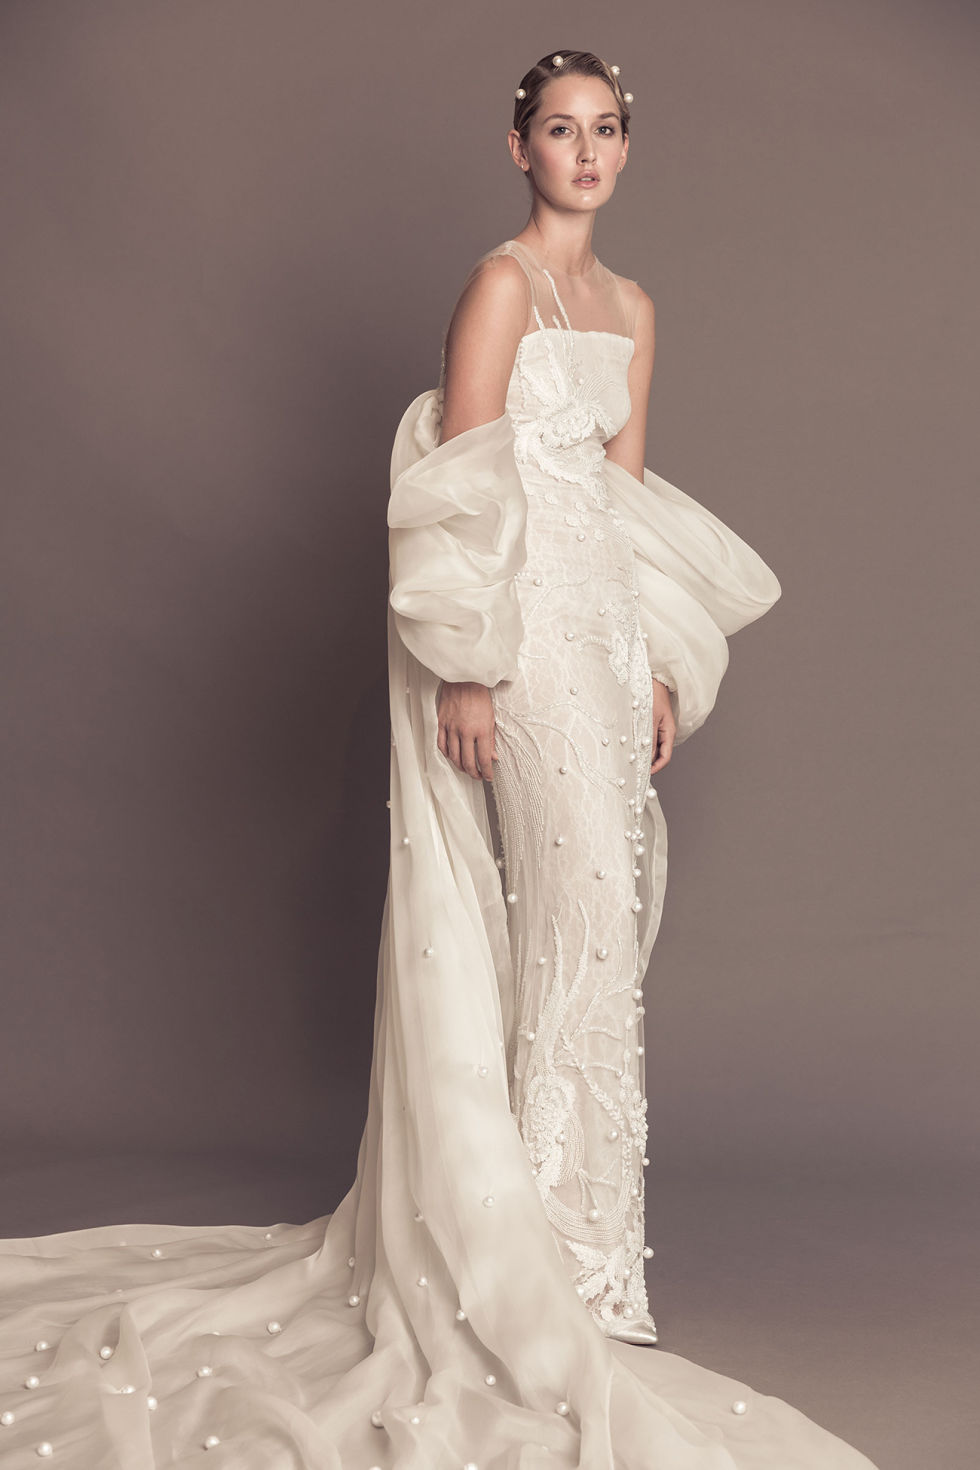 Unique wedding dress alternative wedding dress alternate wedding - 13 Unique Wedding Dresses For 2016 Non Traditional Spring Wedding Dresses